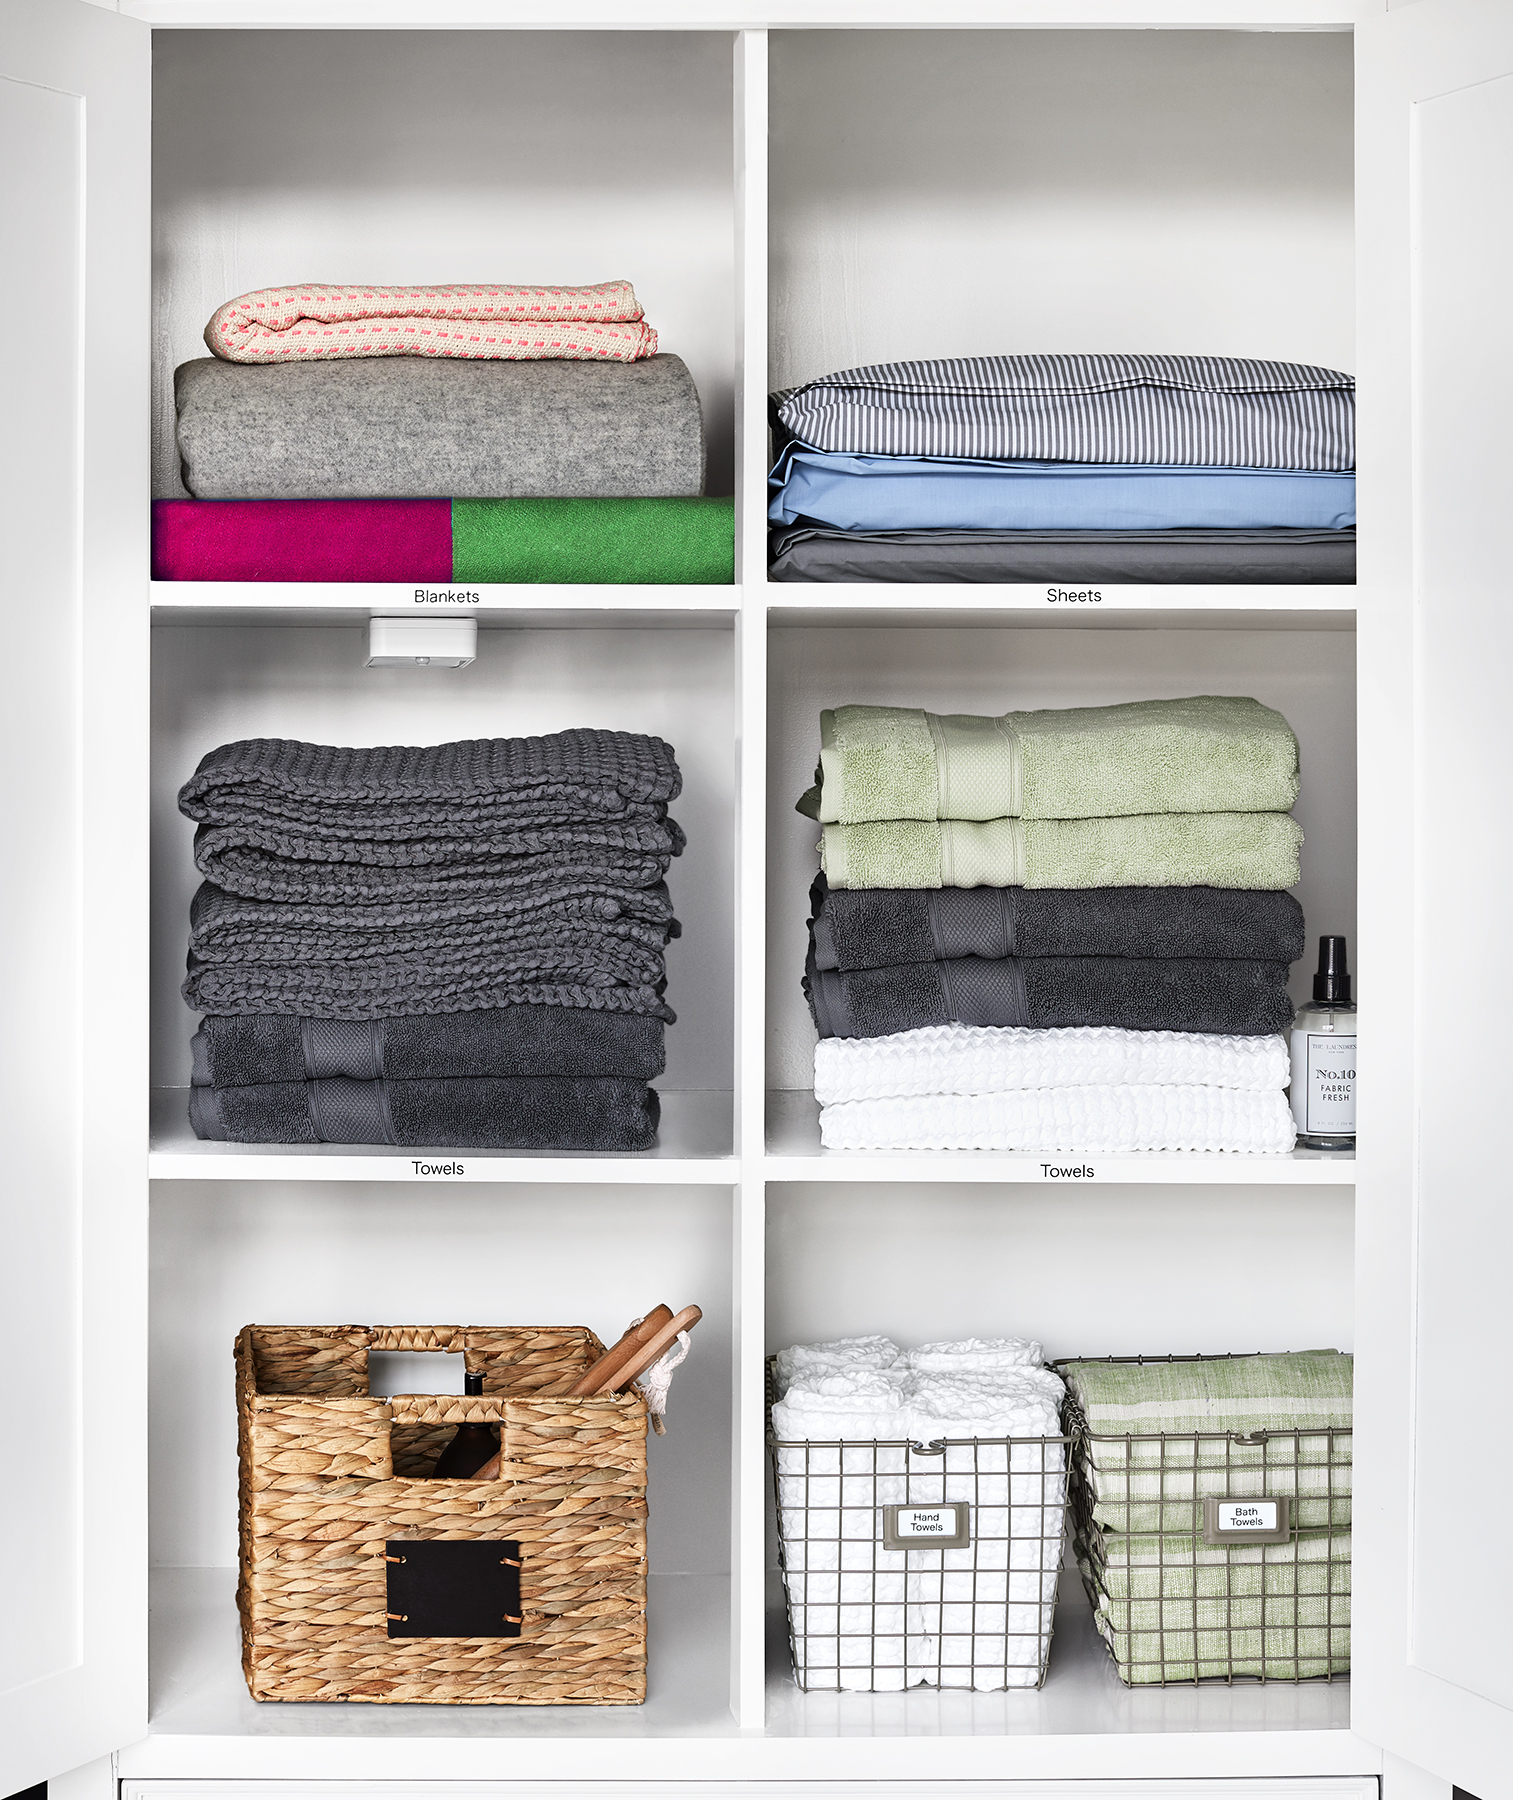 Bathroom and Linen Closet with labels on shelves